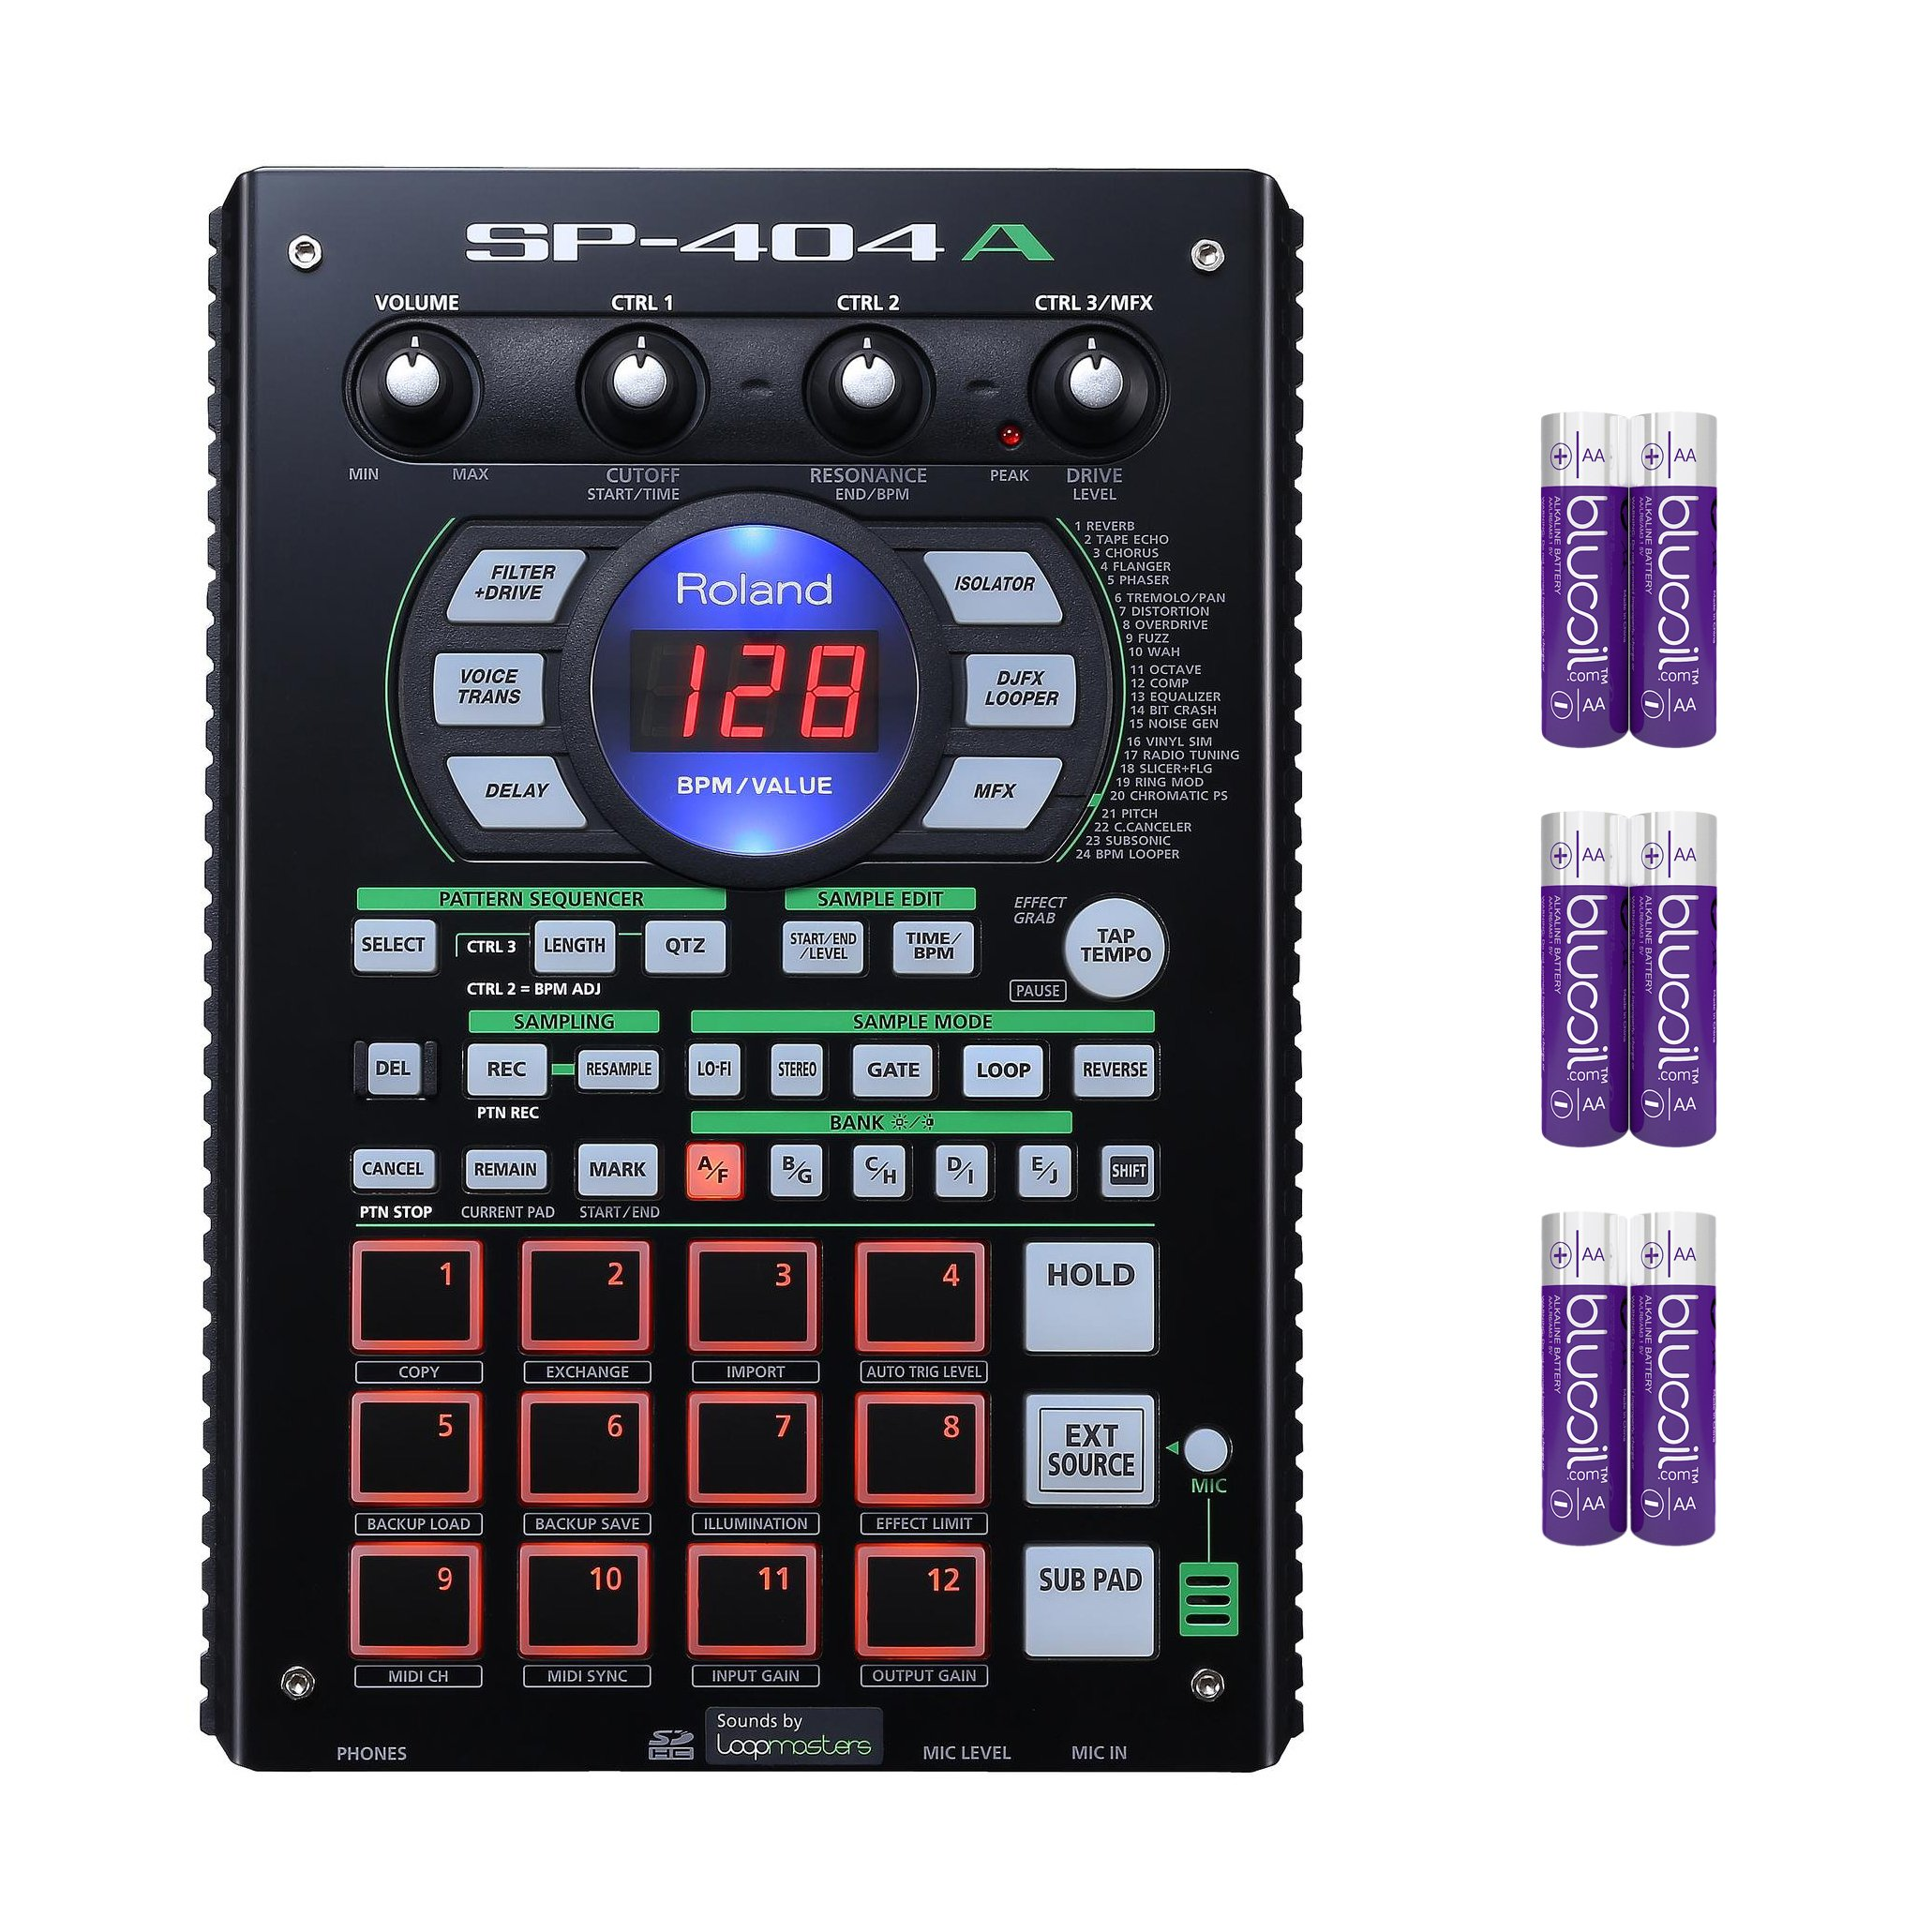 Roland SP-404A Drum Machine - Linear Wave Sampler with Pattern Sequencer, 12 Performance Pads, 29 Onboard DSP Effects, Built-in Microphone Bundle with 1GB SD Card and Six Blucoil AA Batteries